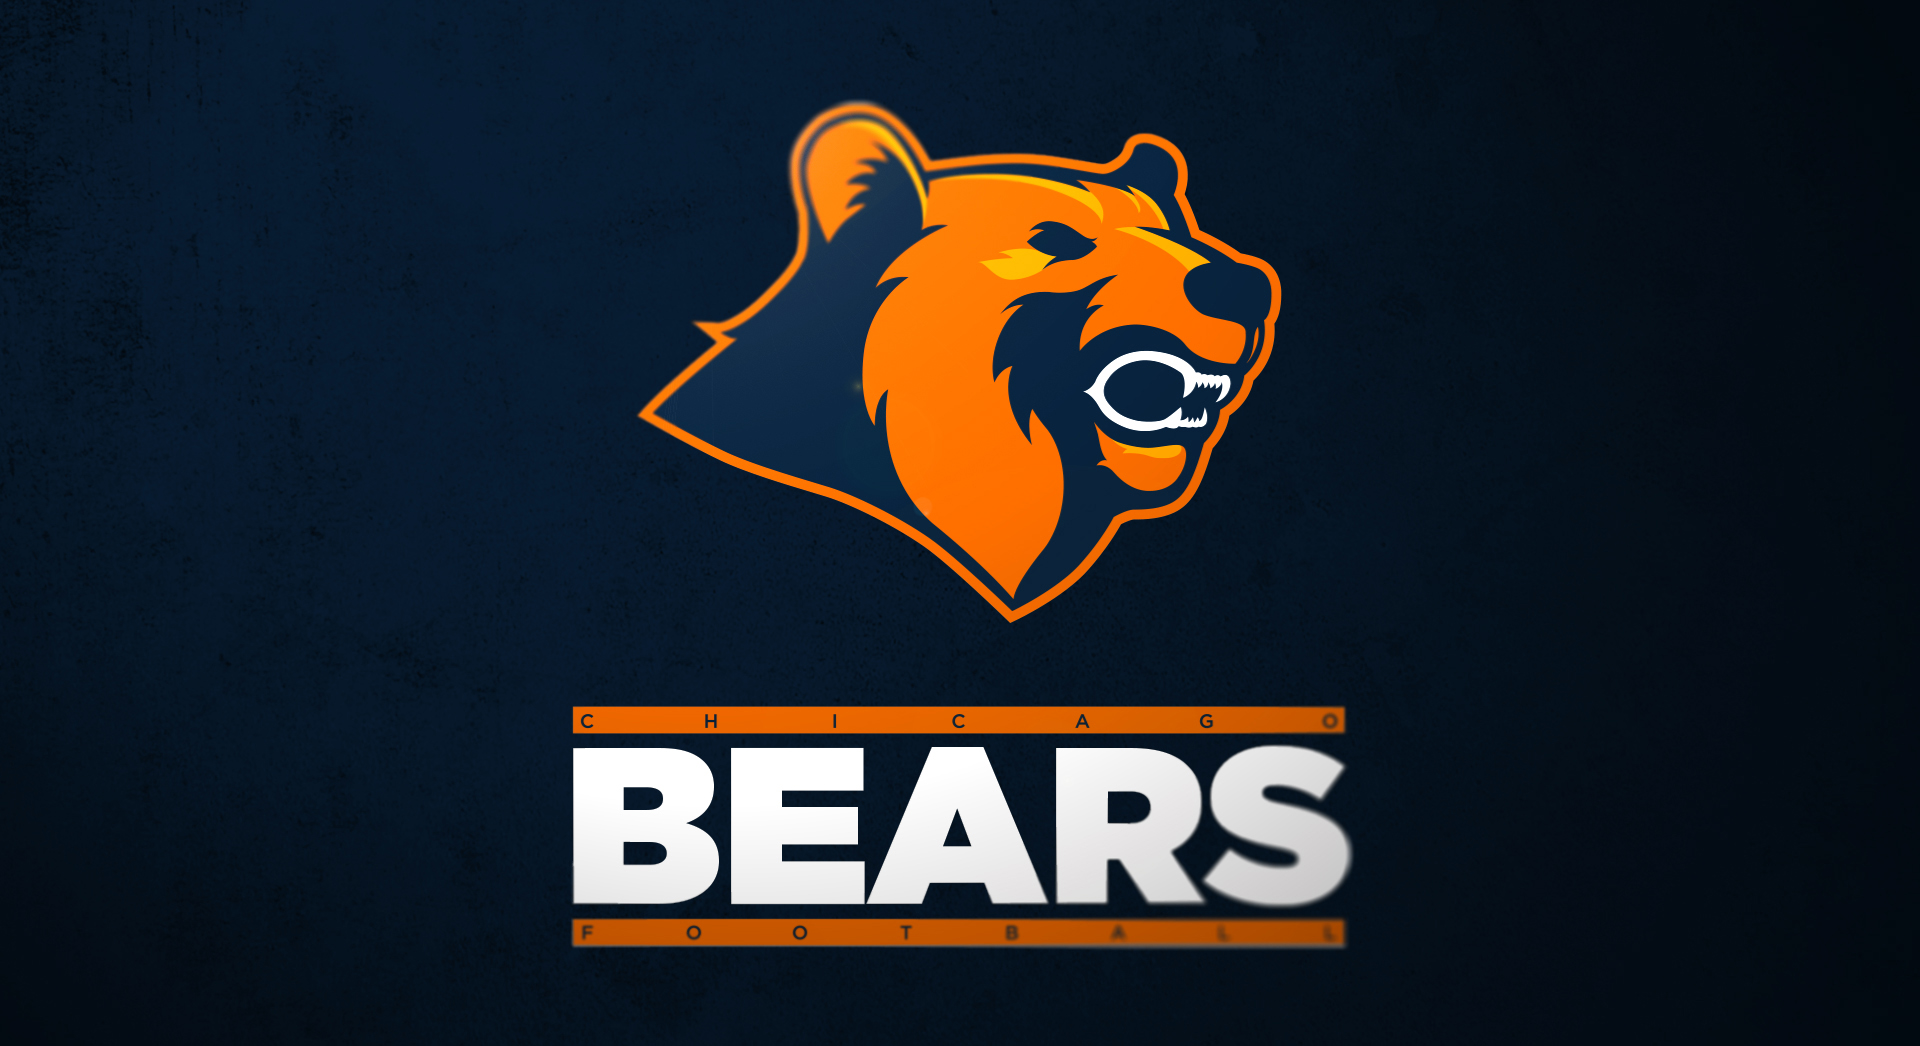 Collection of Chicago Bears Backgrounds, Chicago Bears HQFX Wallpapers 1920x1046